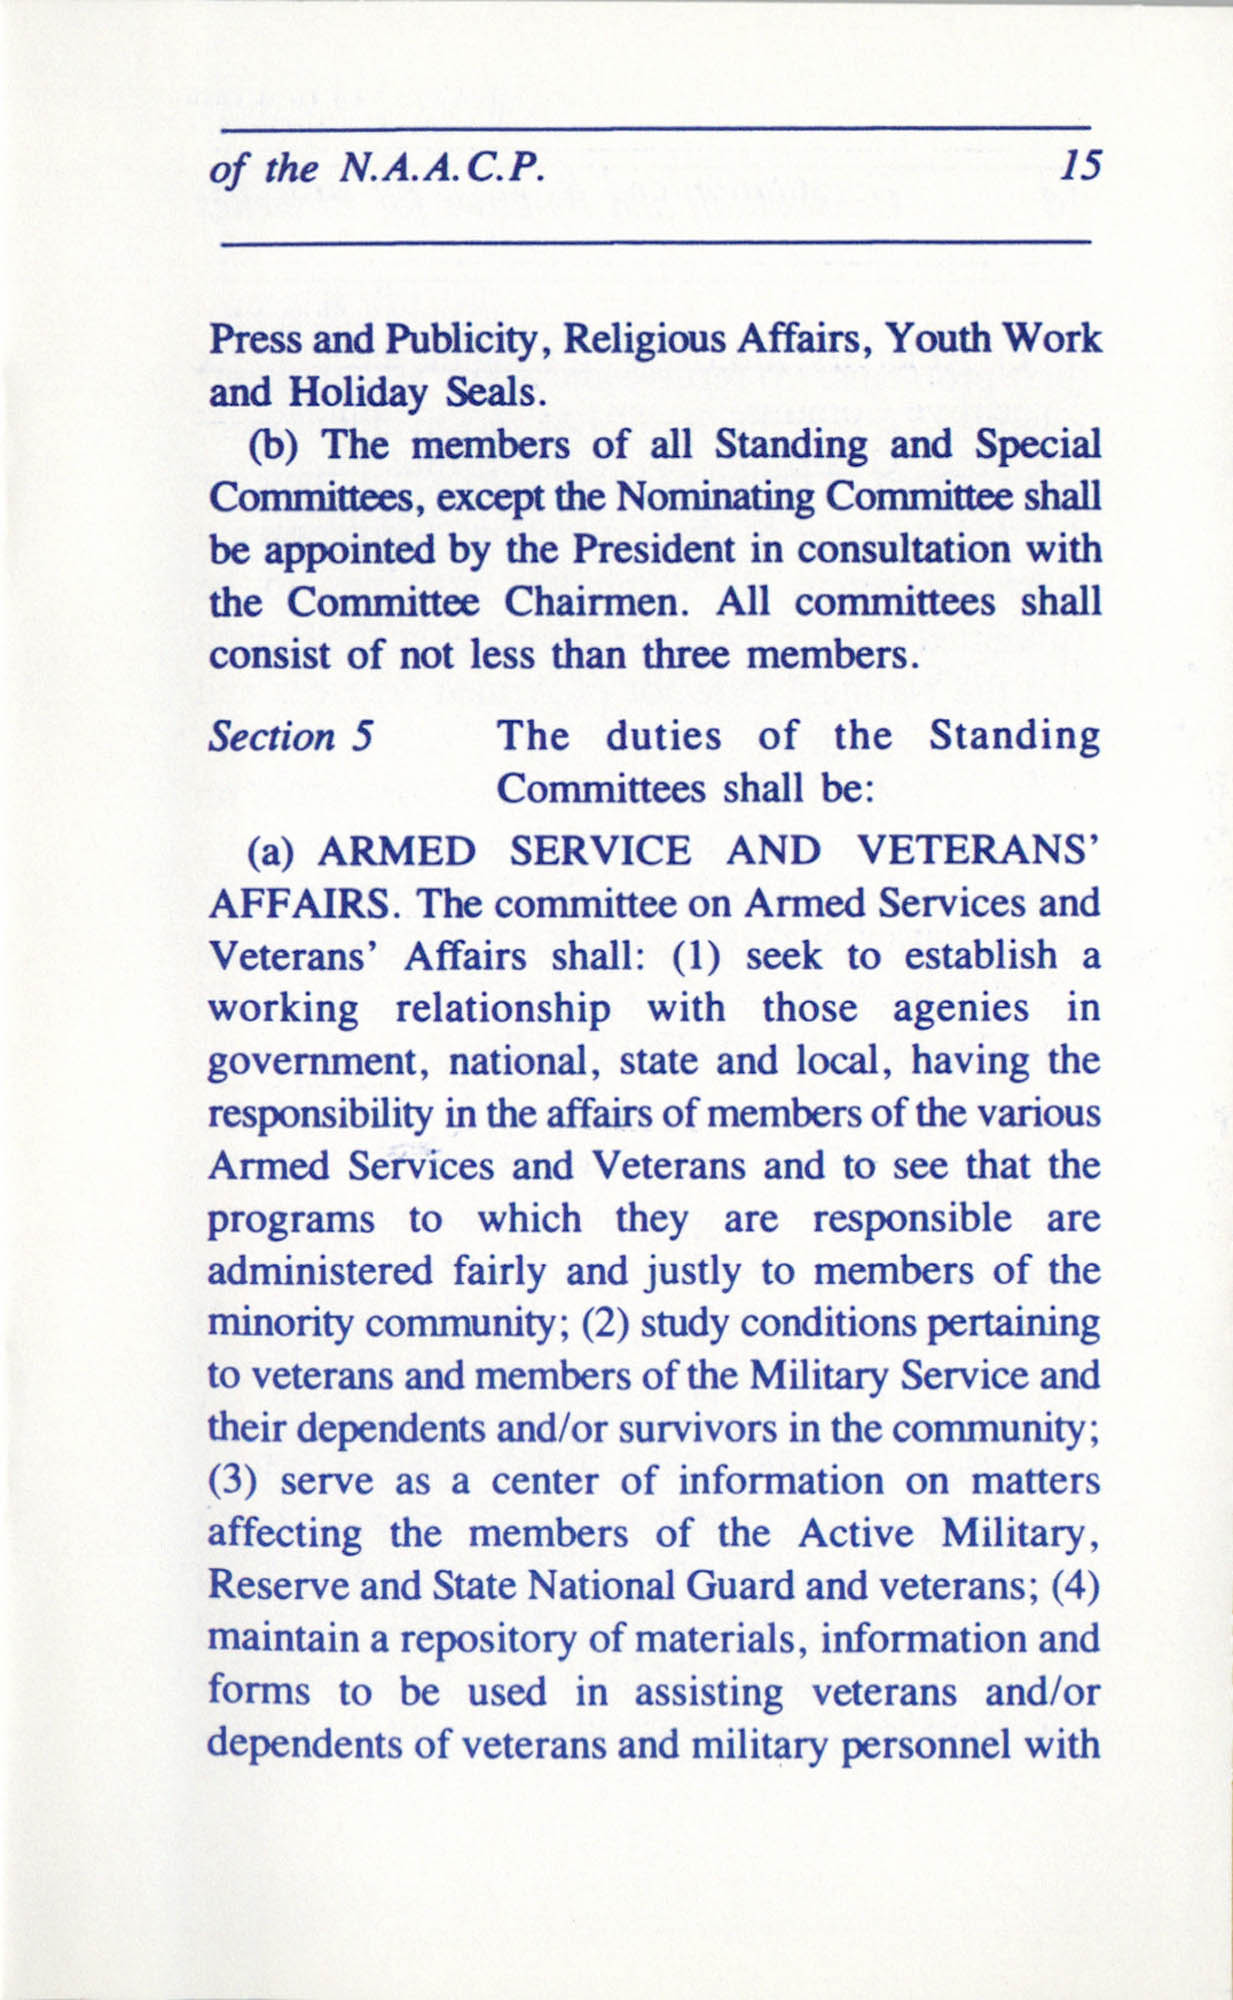 Constitution and By-Laws for Branches of the NAACP, June 1993, Page 15